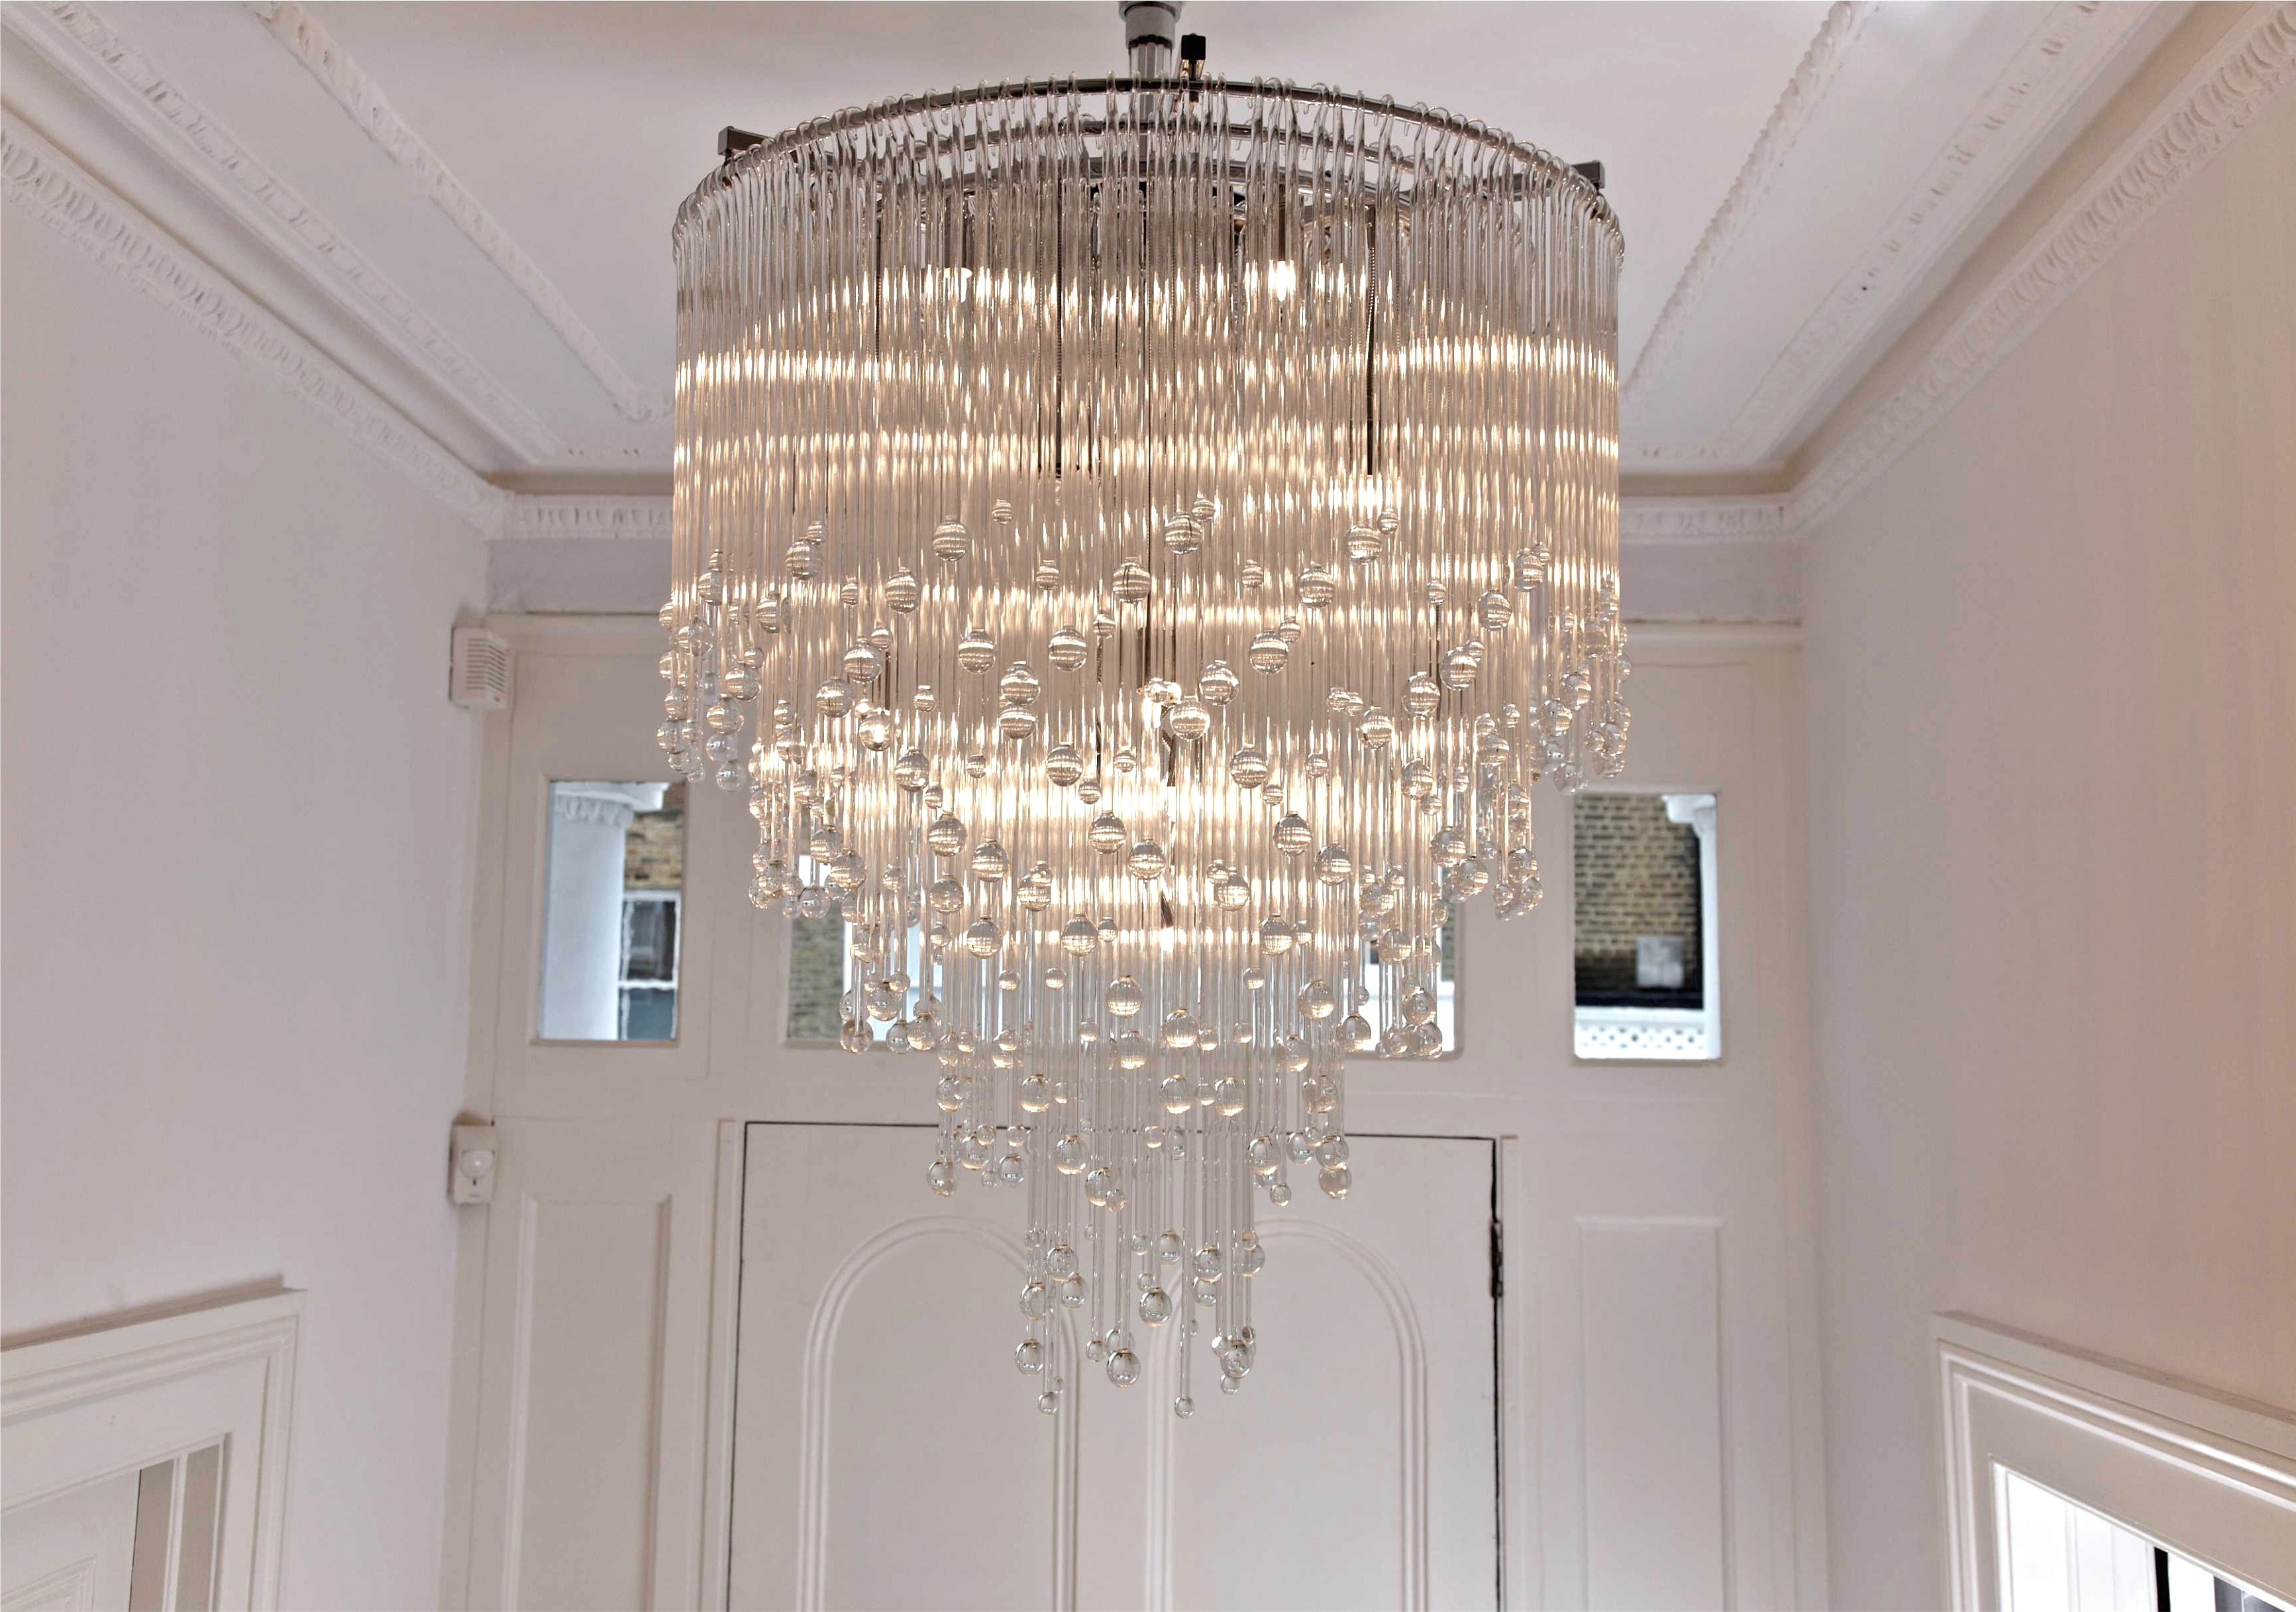 chandeliers large make statement a contemporist contemporary that advantages by beauty modern chandelier oversized